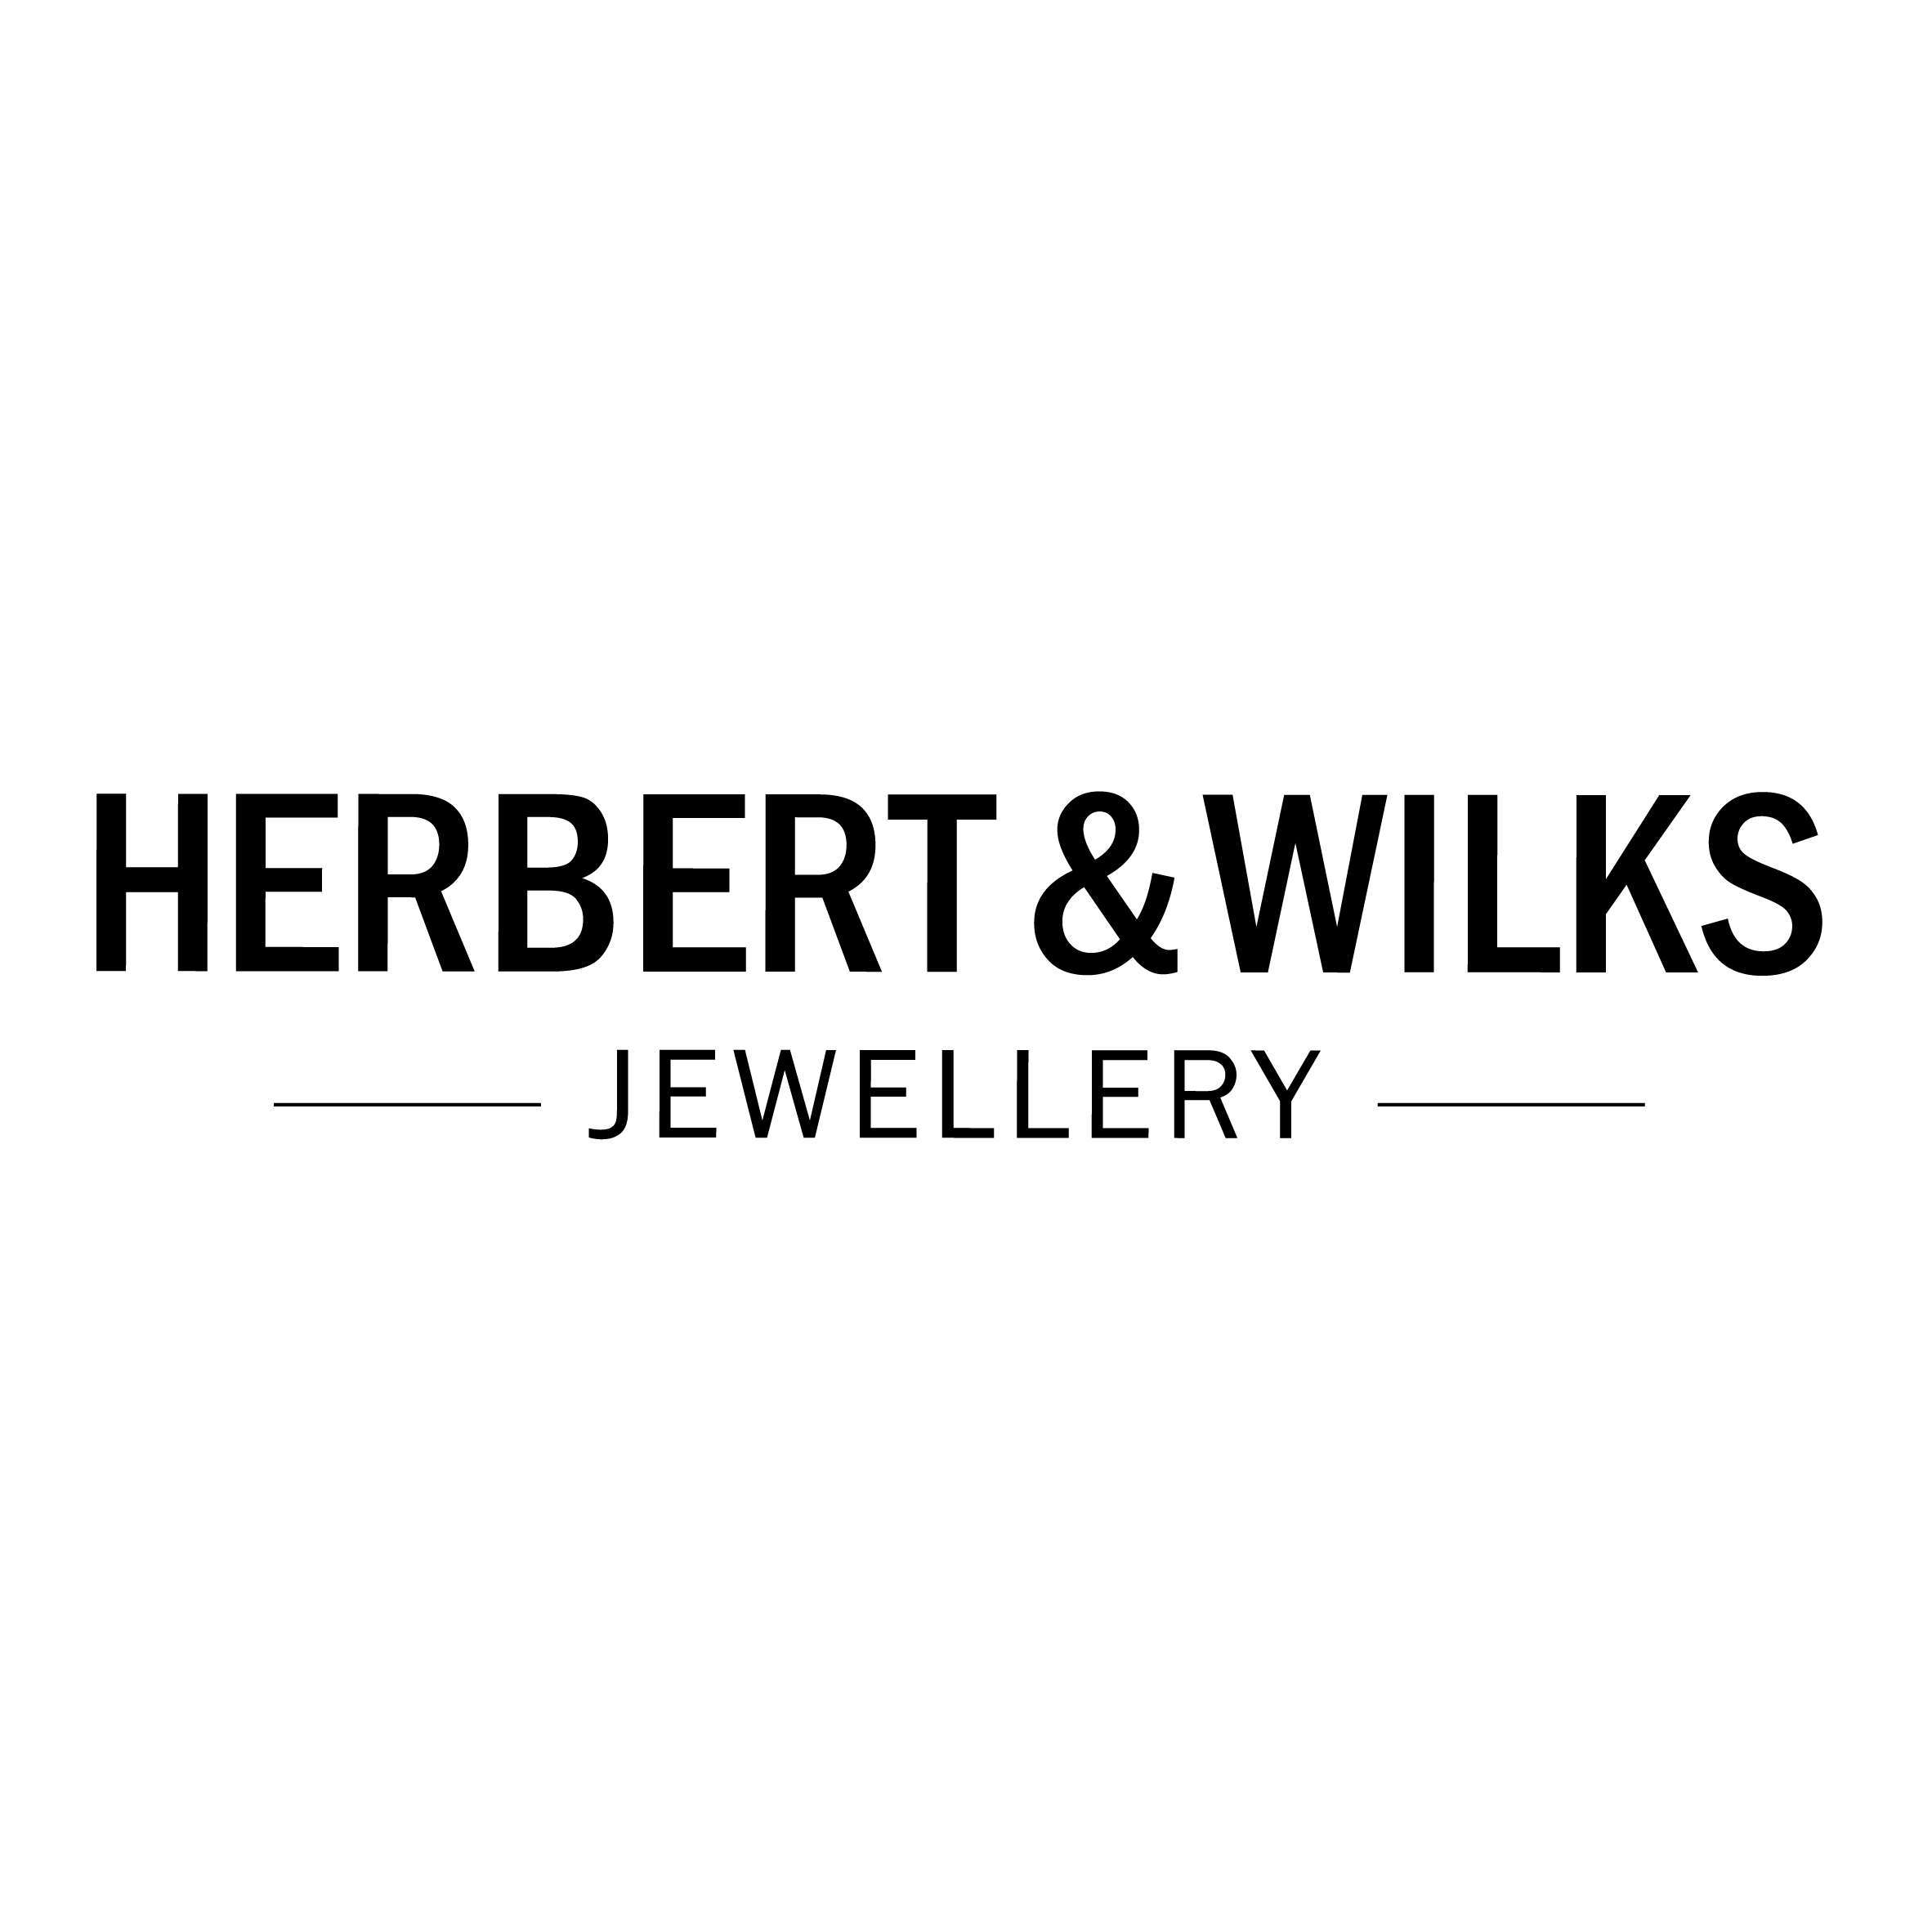 HerbertandWilks Jewellery